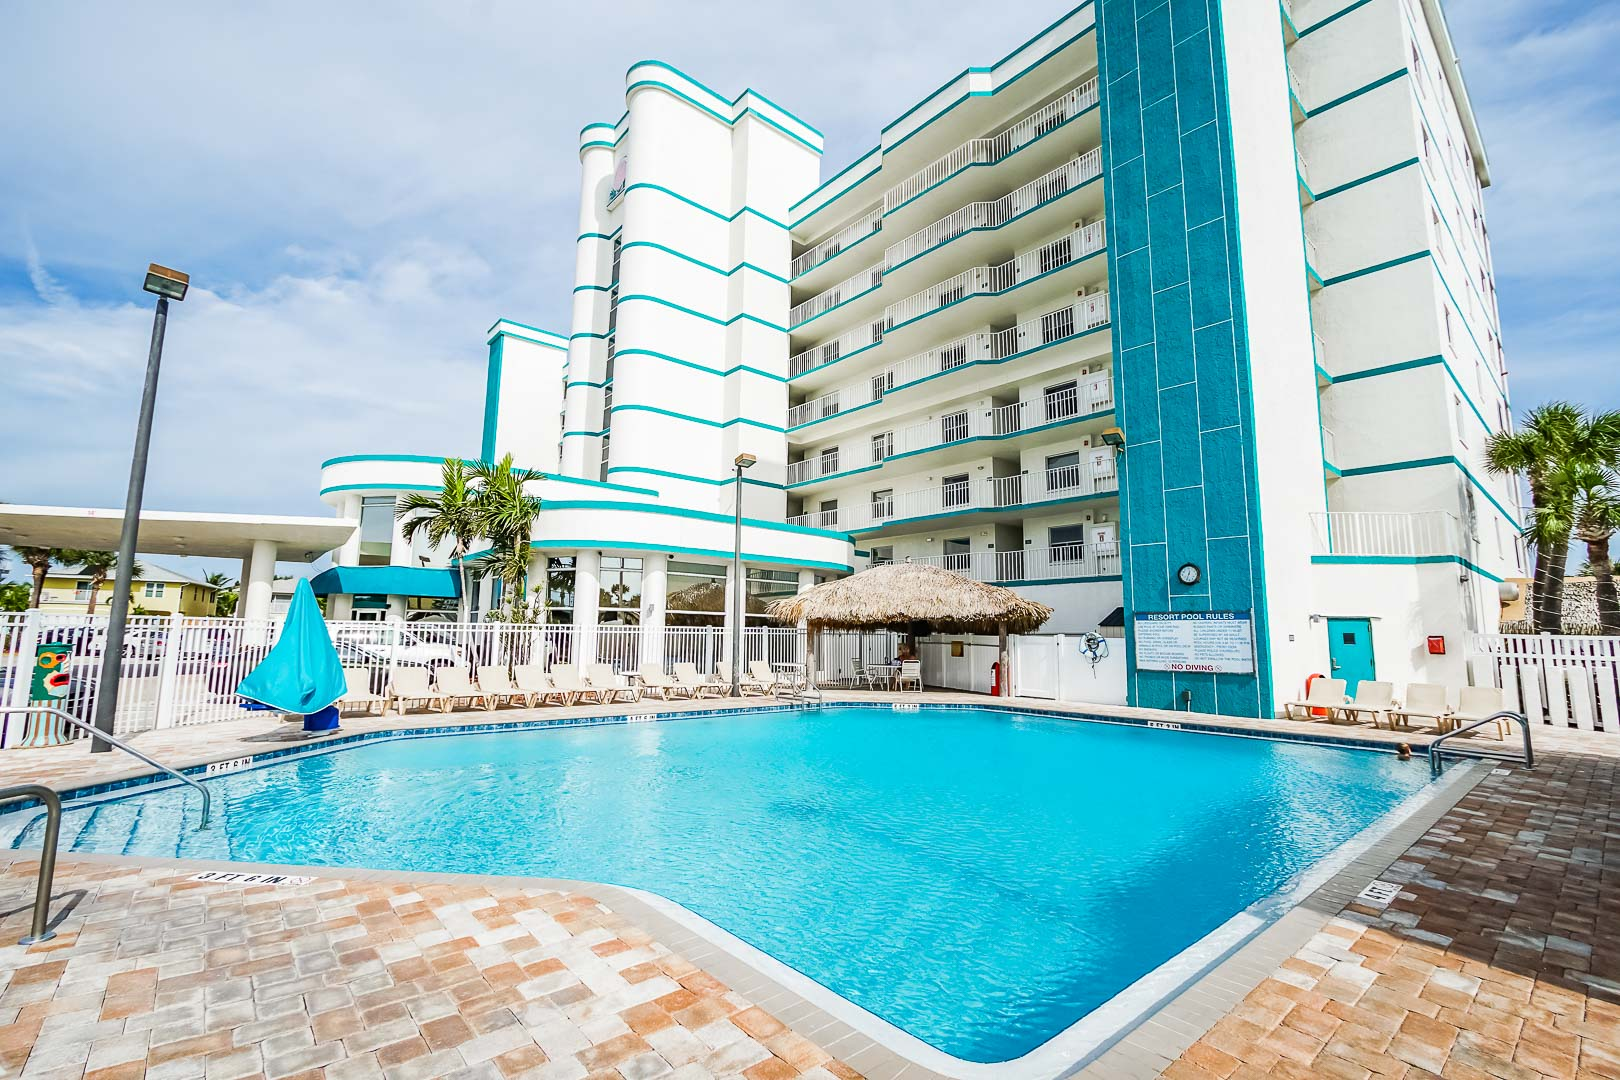 A crisp outdoor swimming pool at VRI's Discovery Beach Resort in Cocoa Beach, Florida.